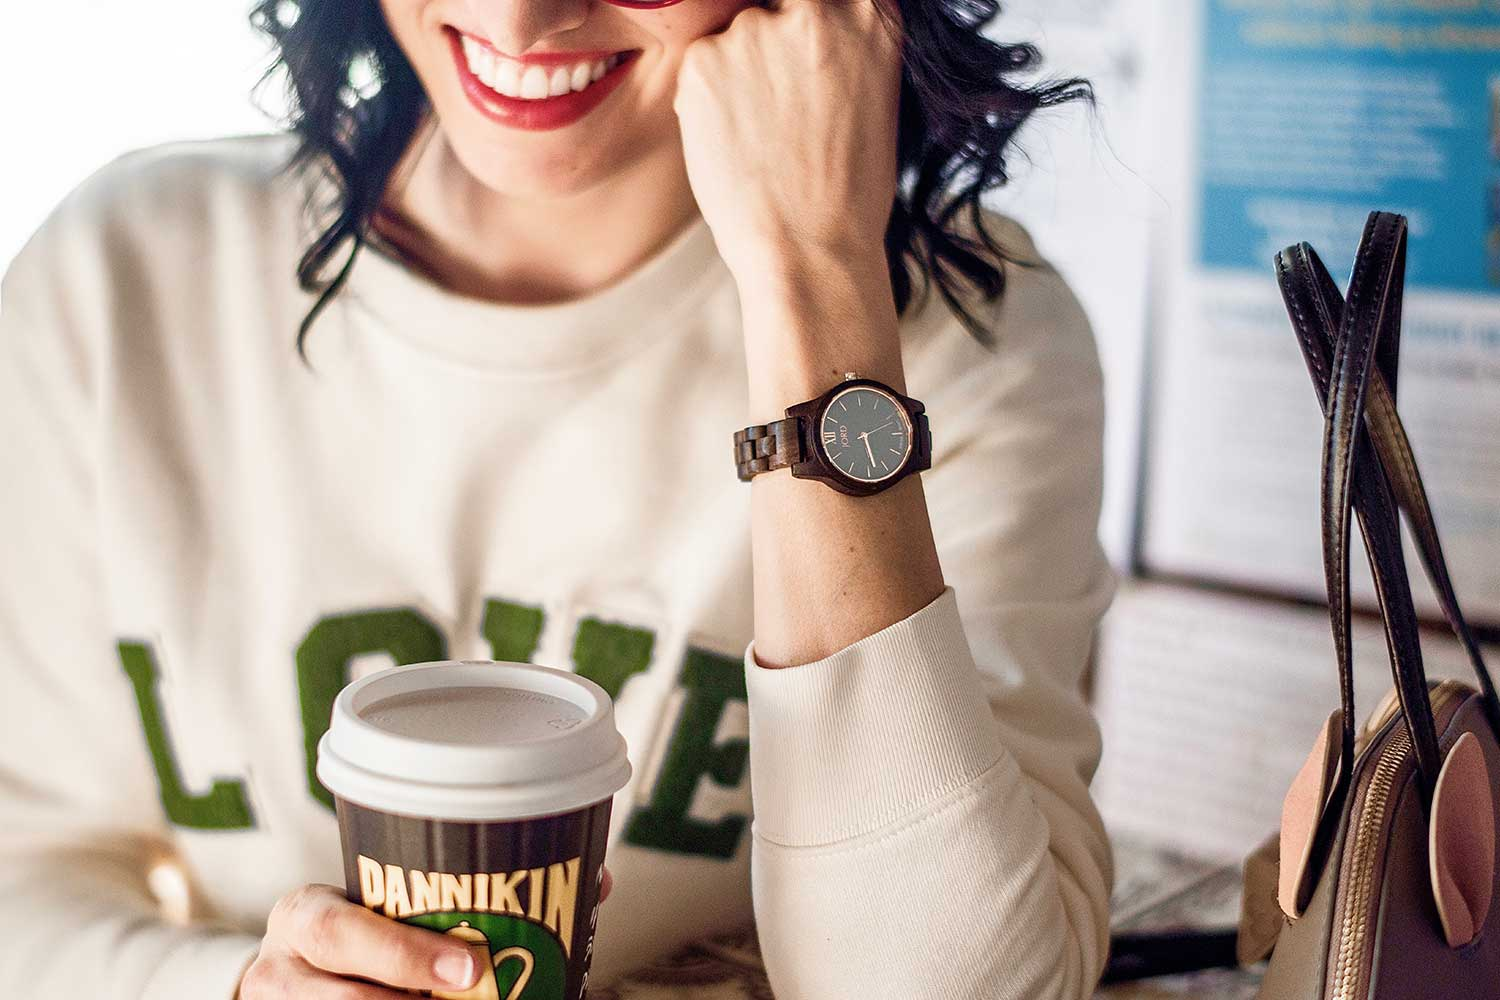 jenna-pilant-san-diego-fashion-blogger-lucky-little-mustardseed-black-friday-what-watch-to-buy-for-gift-giving-jord-watches-1